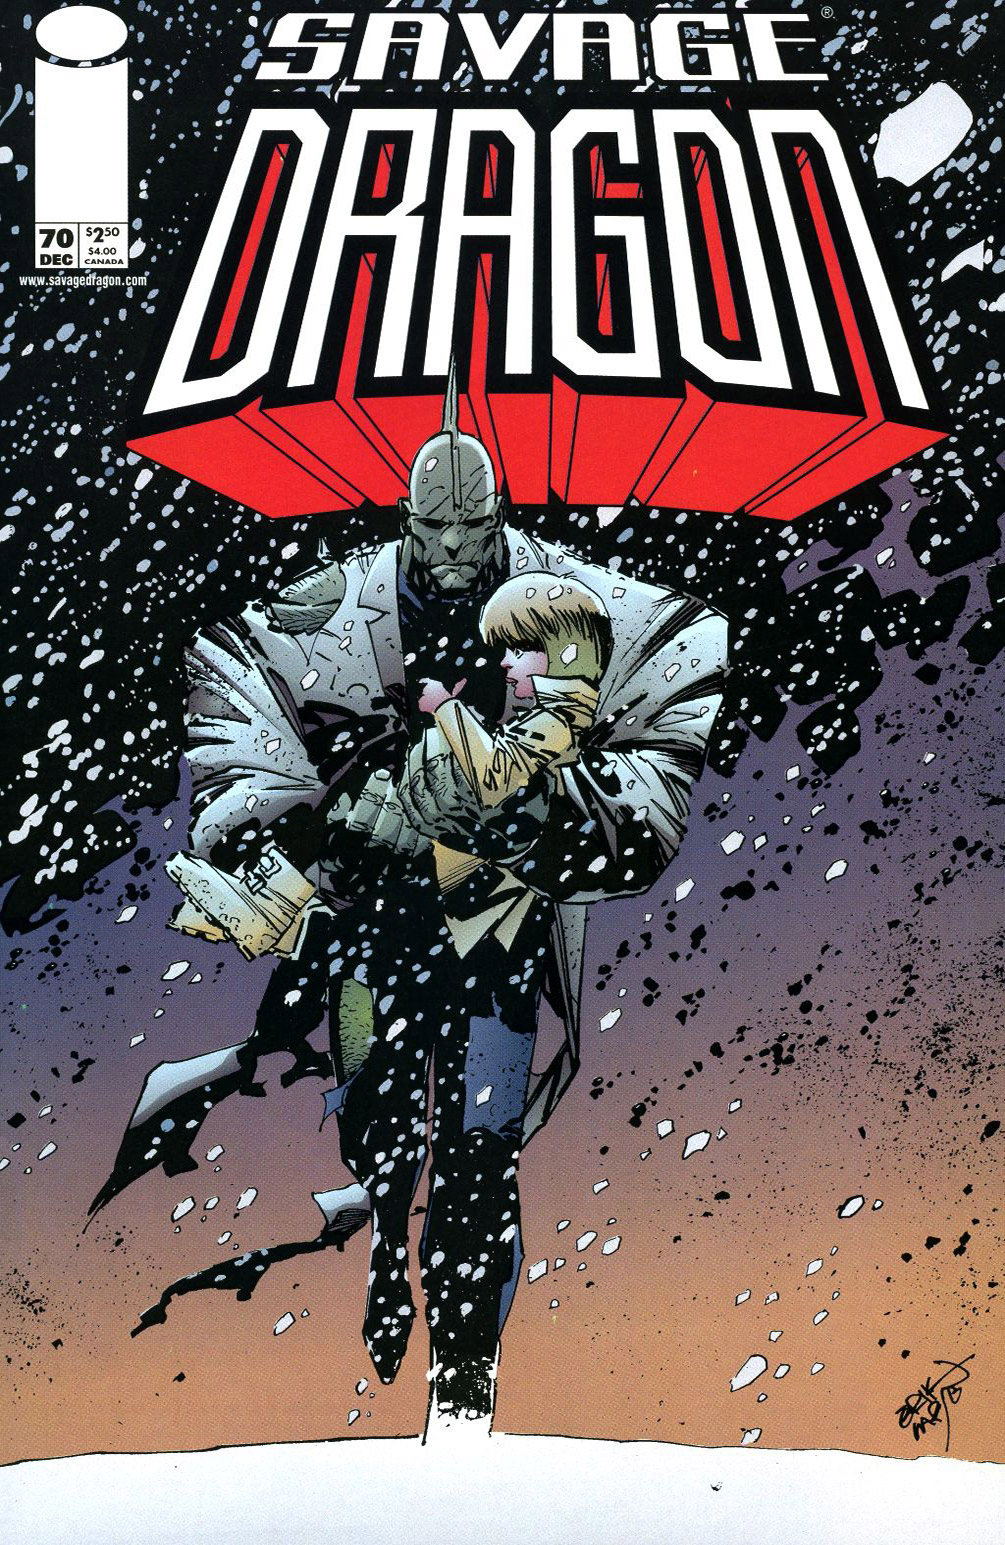 Cover Savage Dragon Vol.2 #70